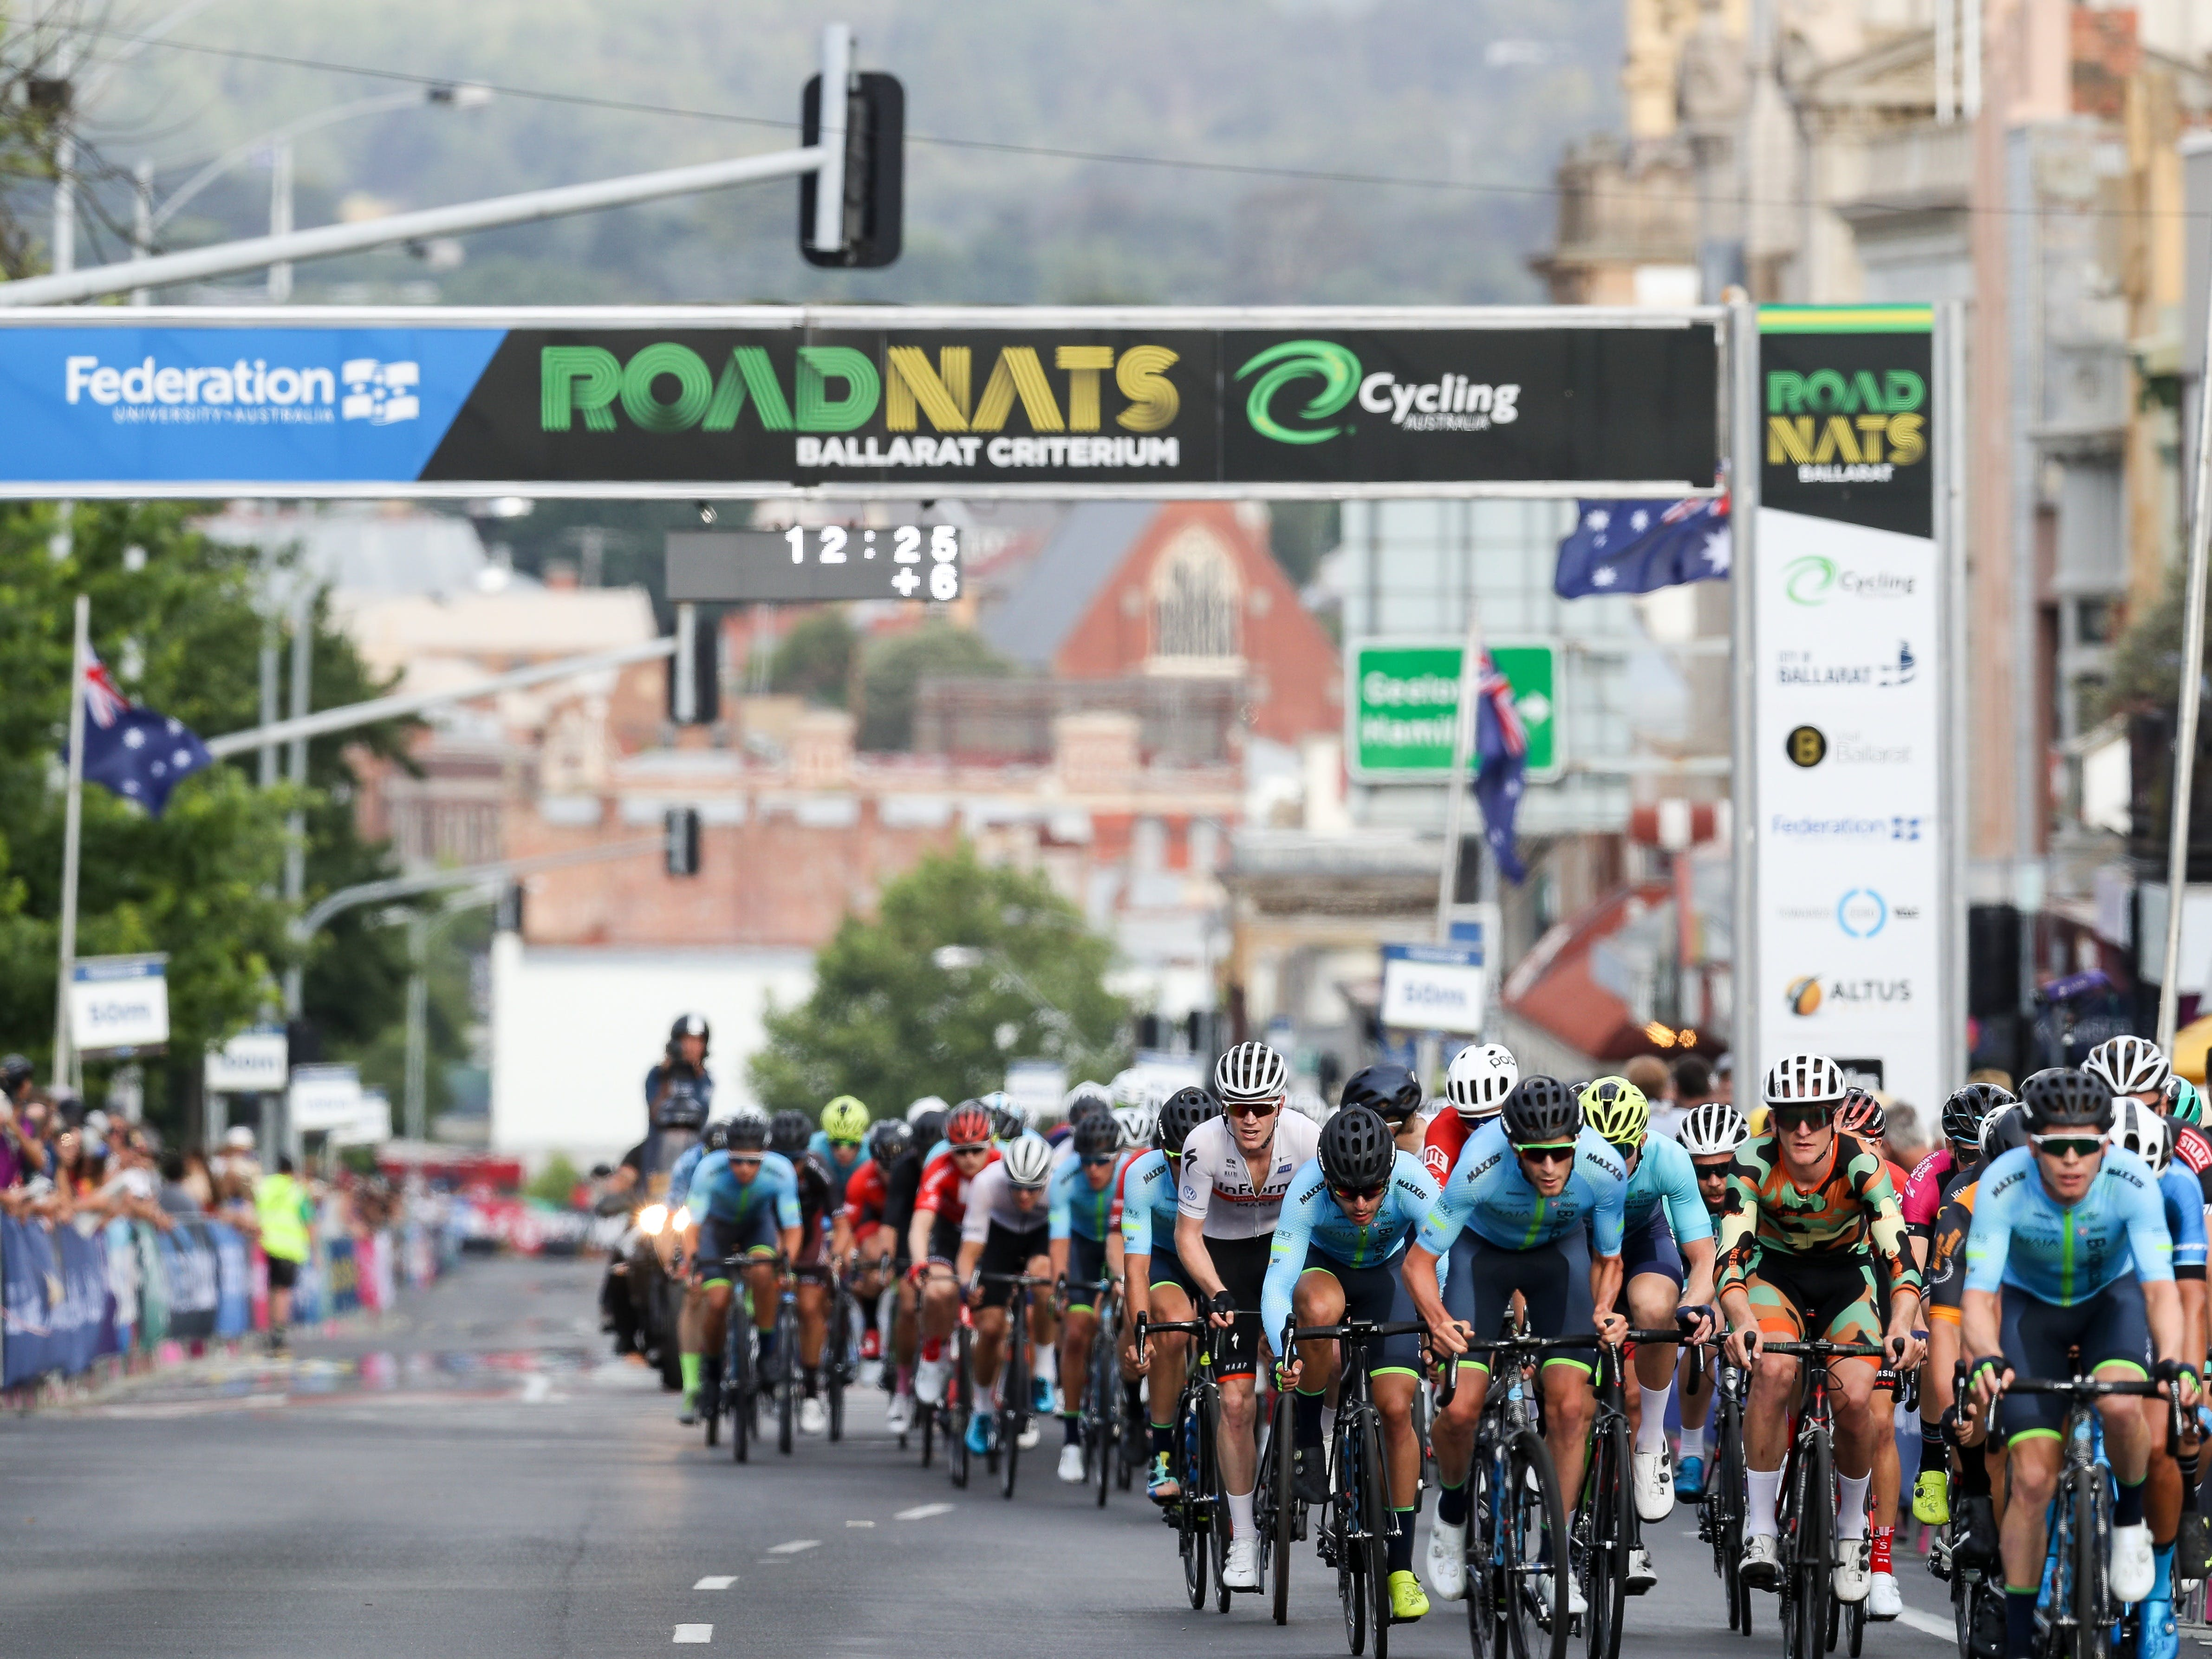 Federation University Criterium National Championships - Ballarat - Tourism Canberra